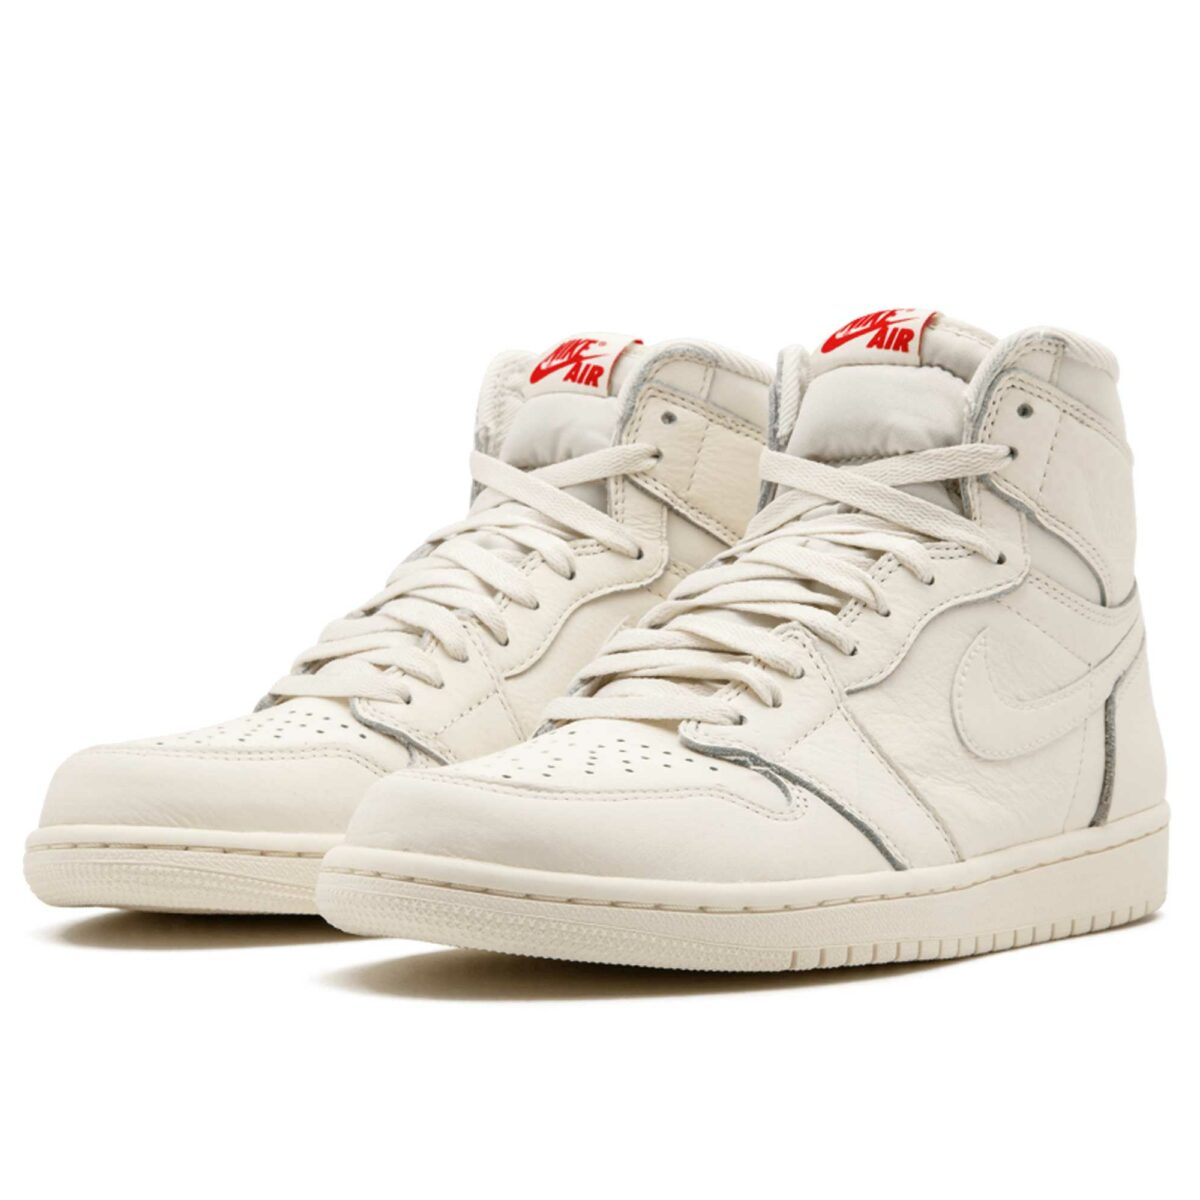 Air Jordan 1 retro high og all white 555088 _114 купить